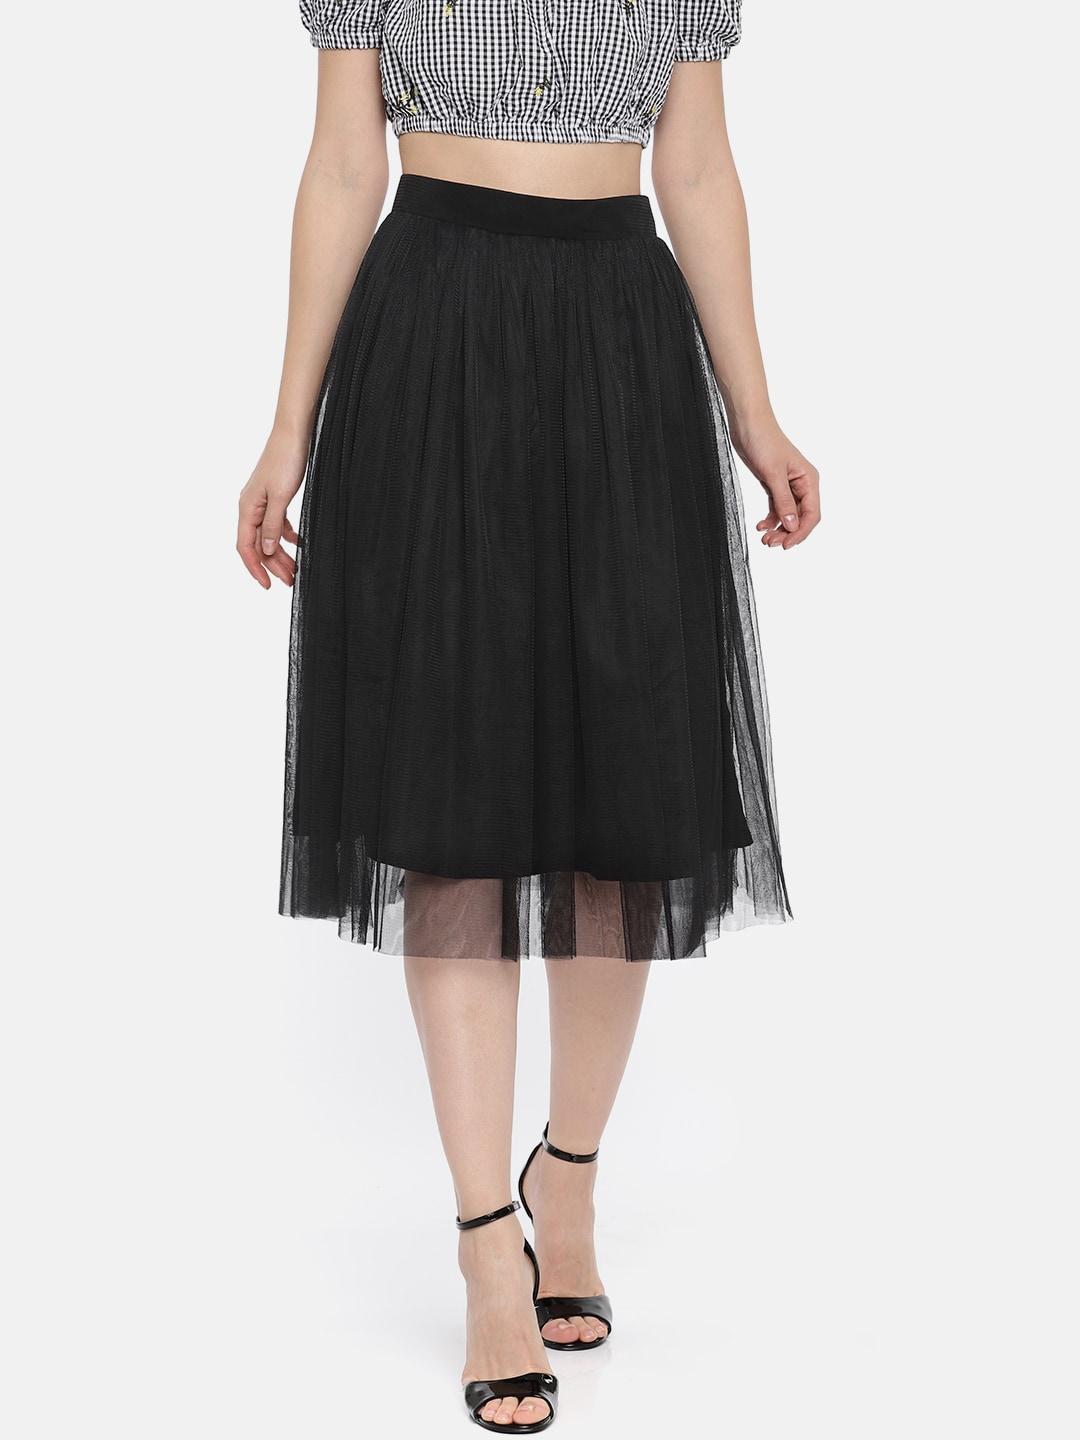 Street Fashionforward style looks in ostel springsummer, Short Casual wedding dresses pictures